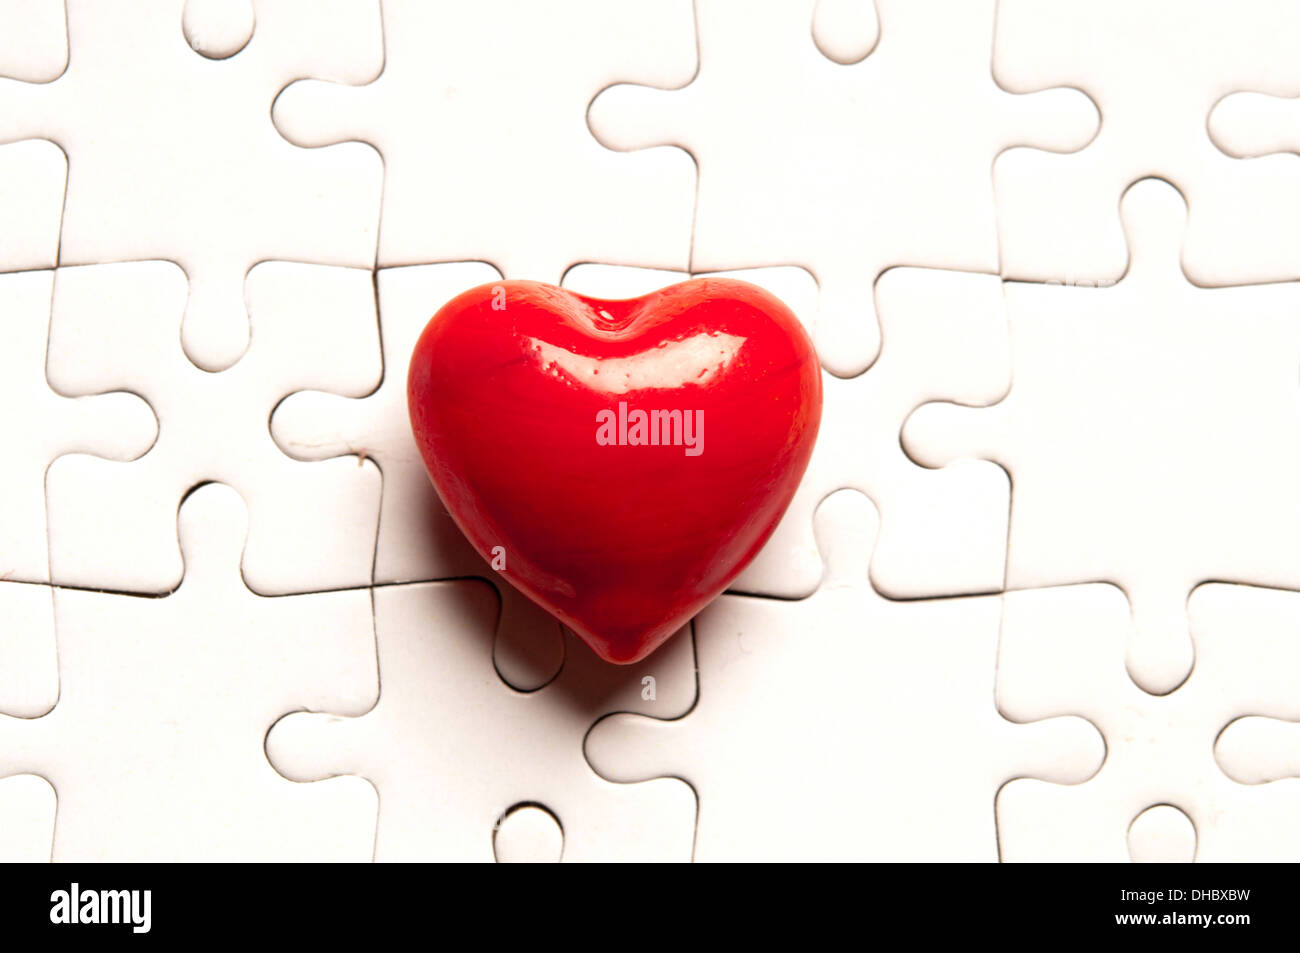 heart shape on jigsaw puzzle, love concept - Stock Image